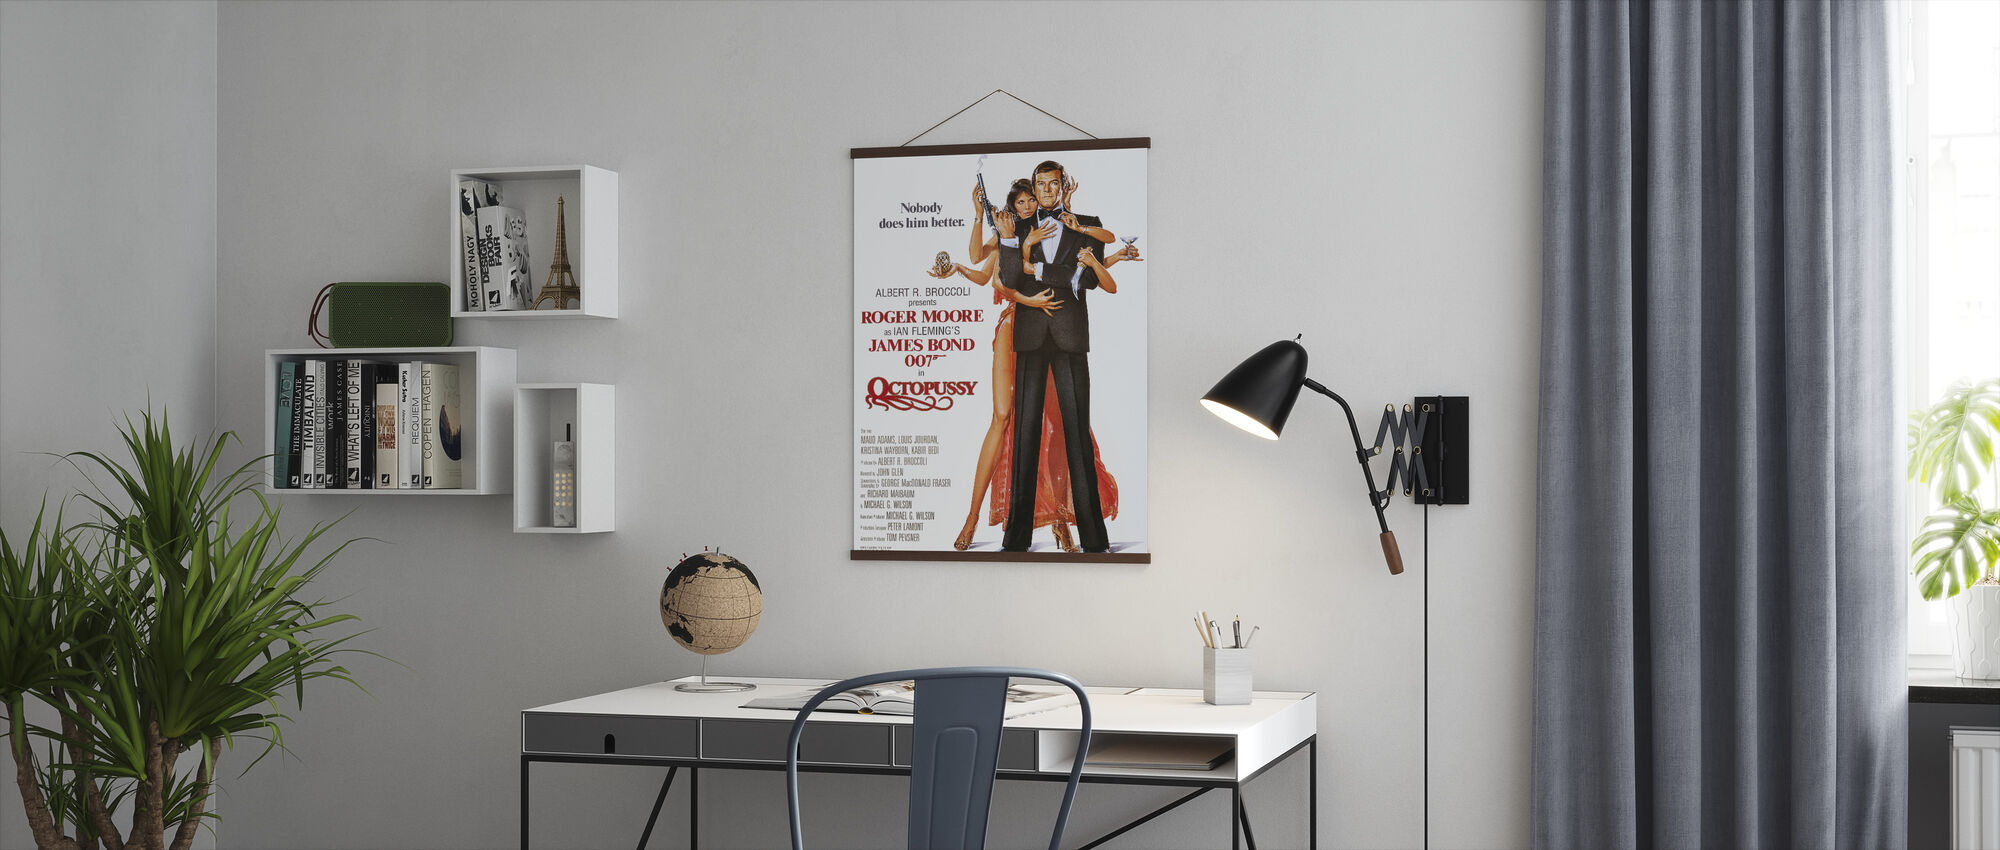 Octopussy - Poster - Office